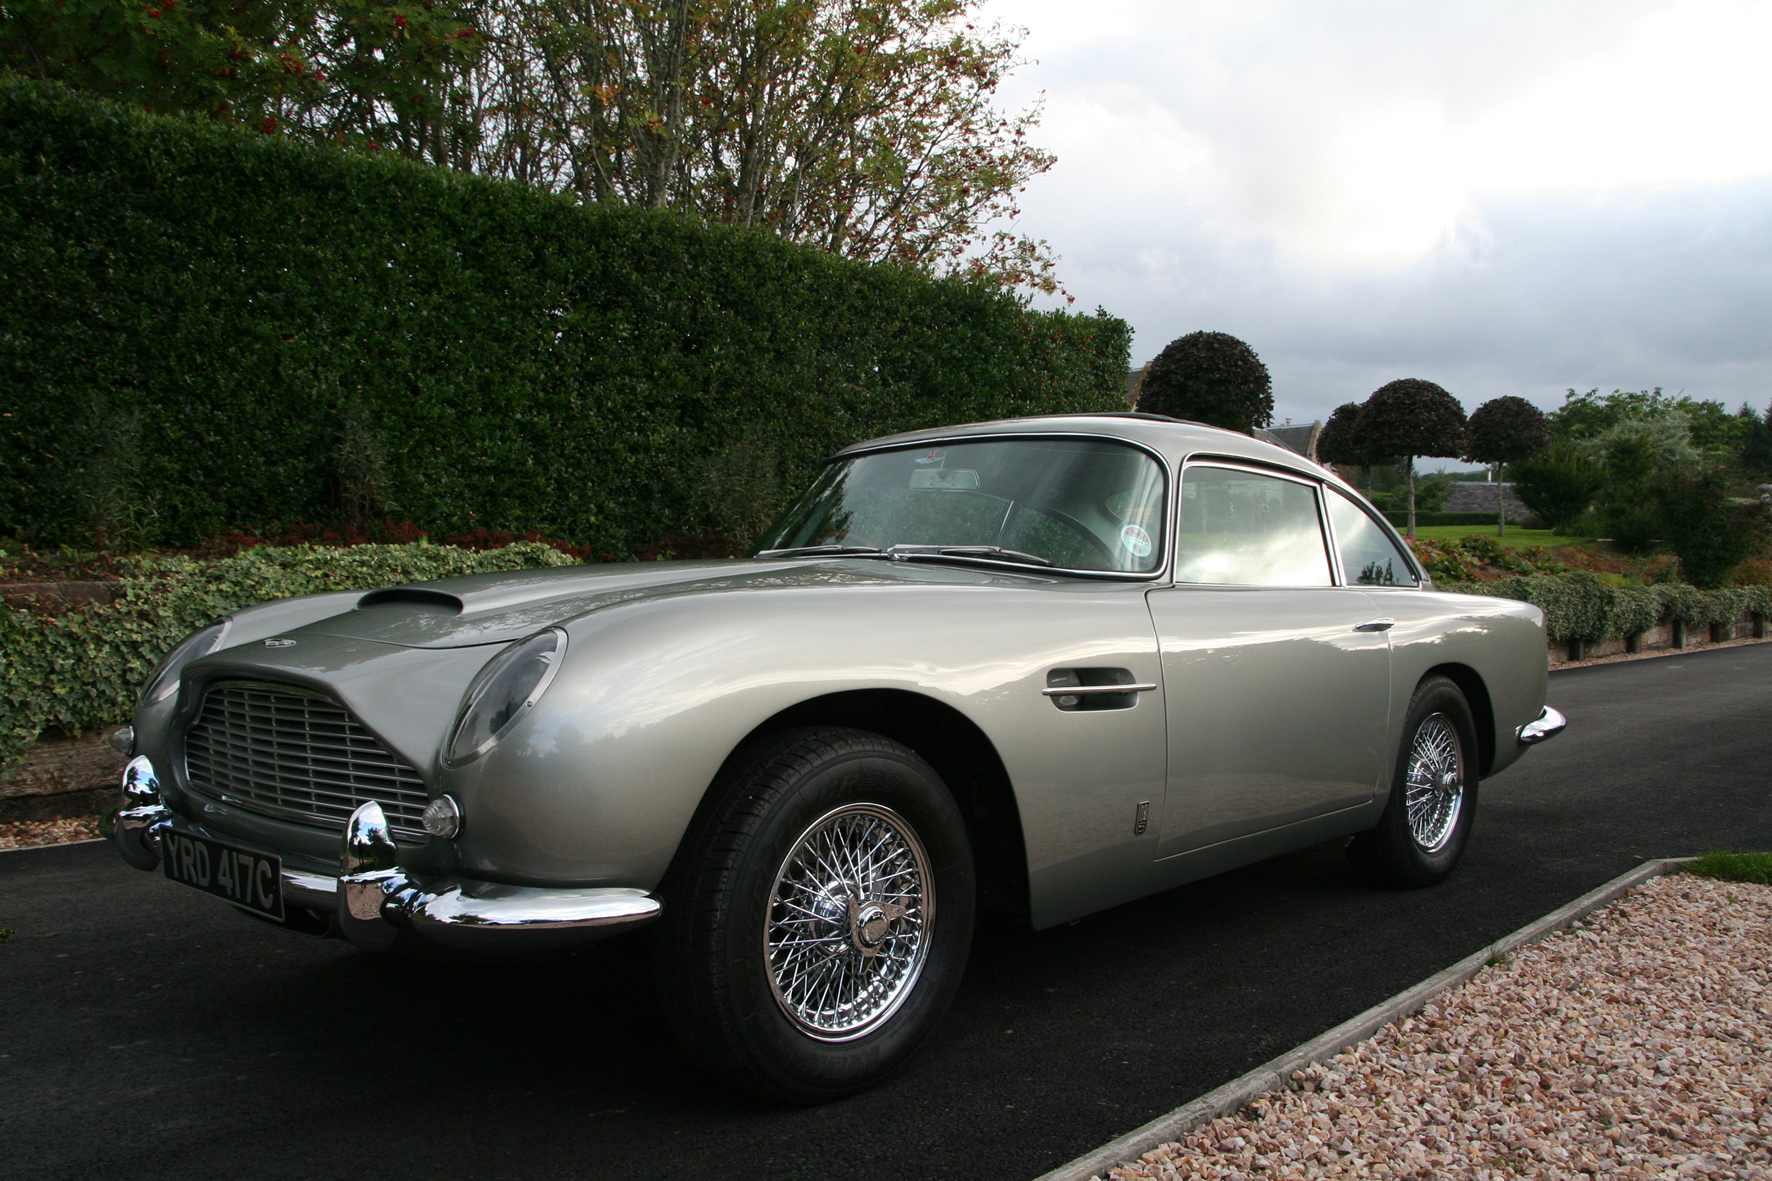 Classic Aston Martin Db5 Iconic Jaguars Up For Auction